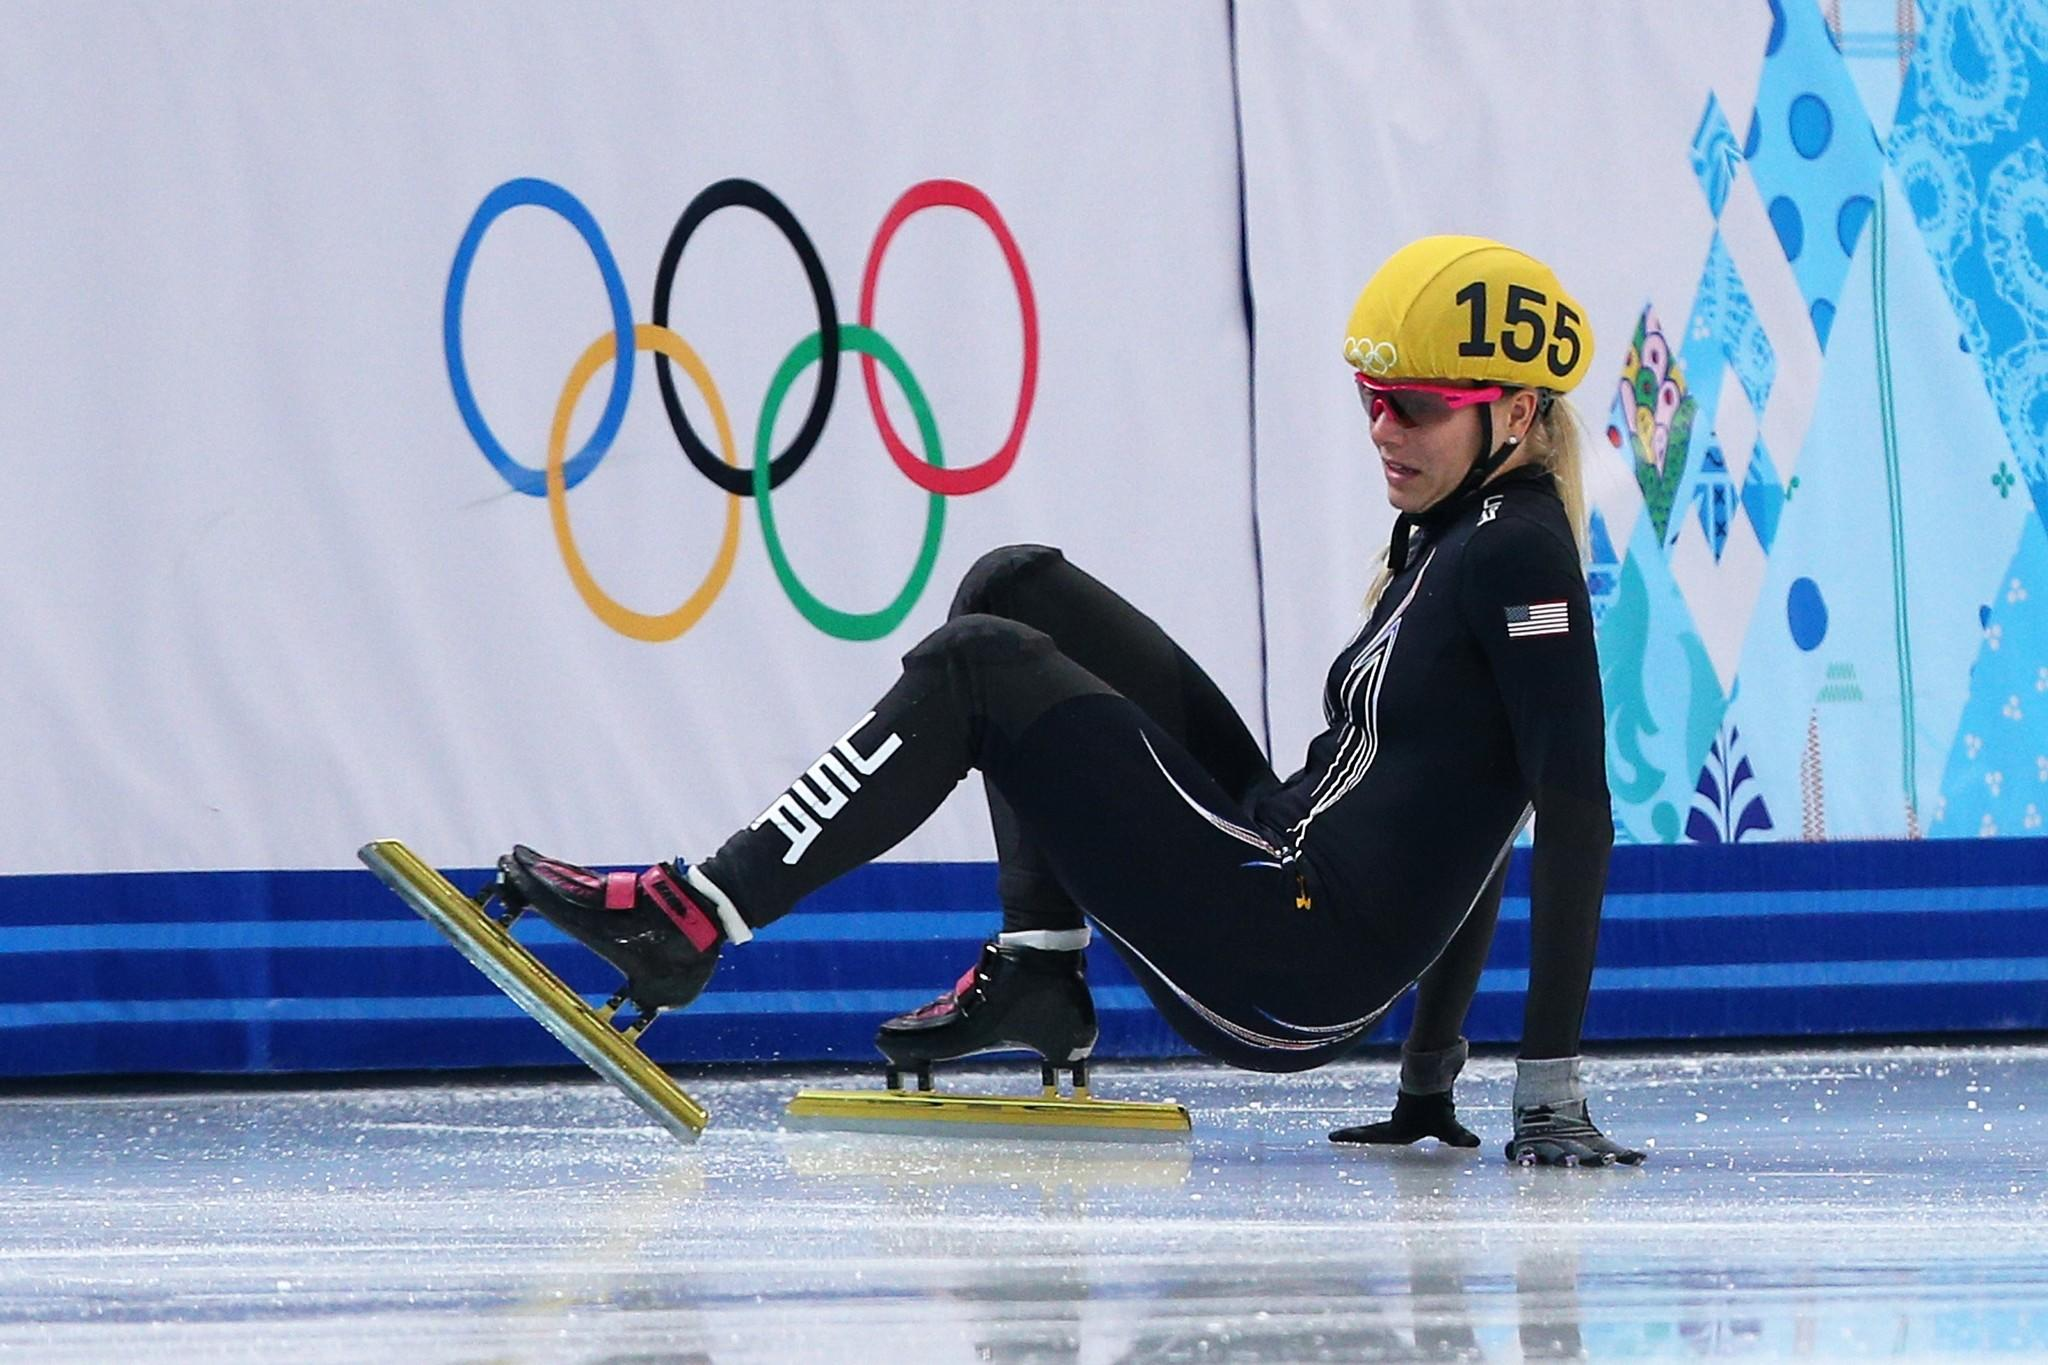 Emily Scott of the United States falls during the Ladies' 1500 m Final Short Track Speedskating.